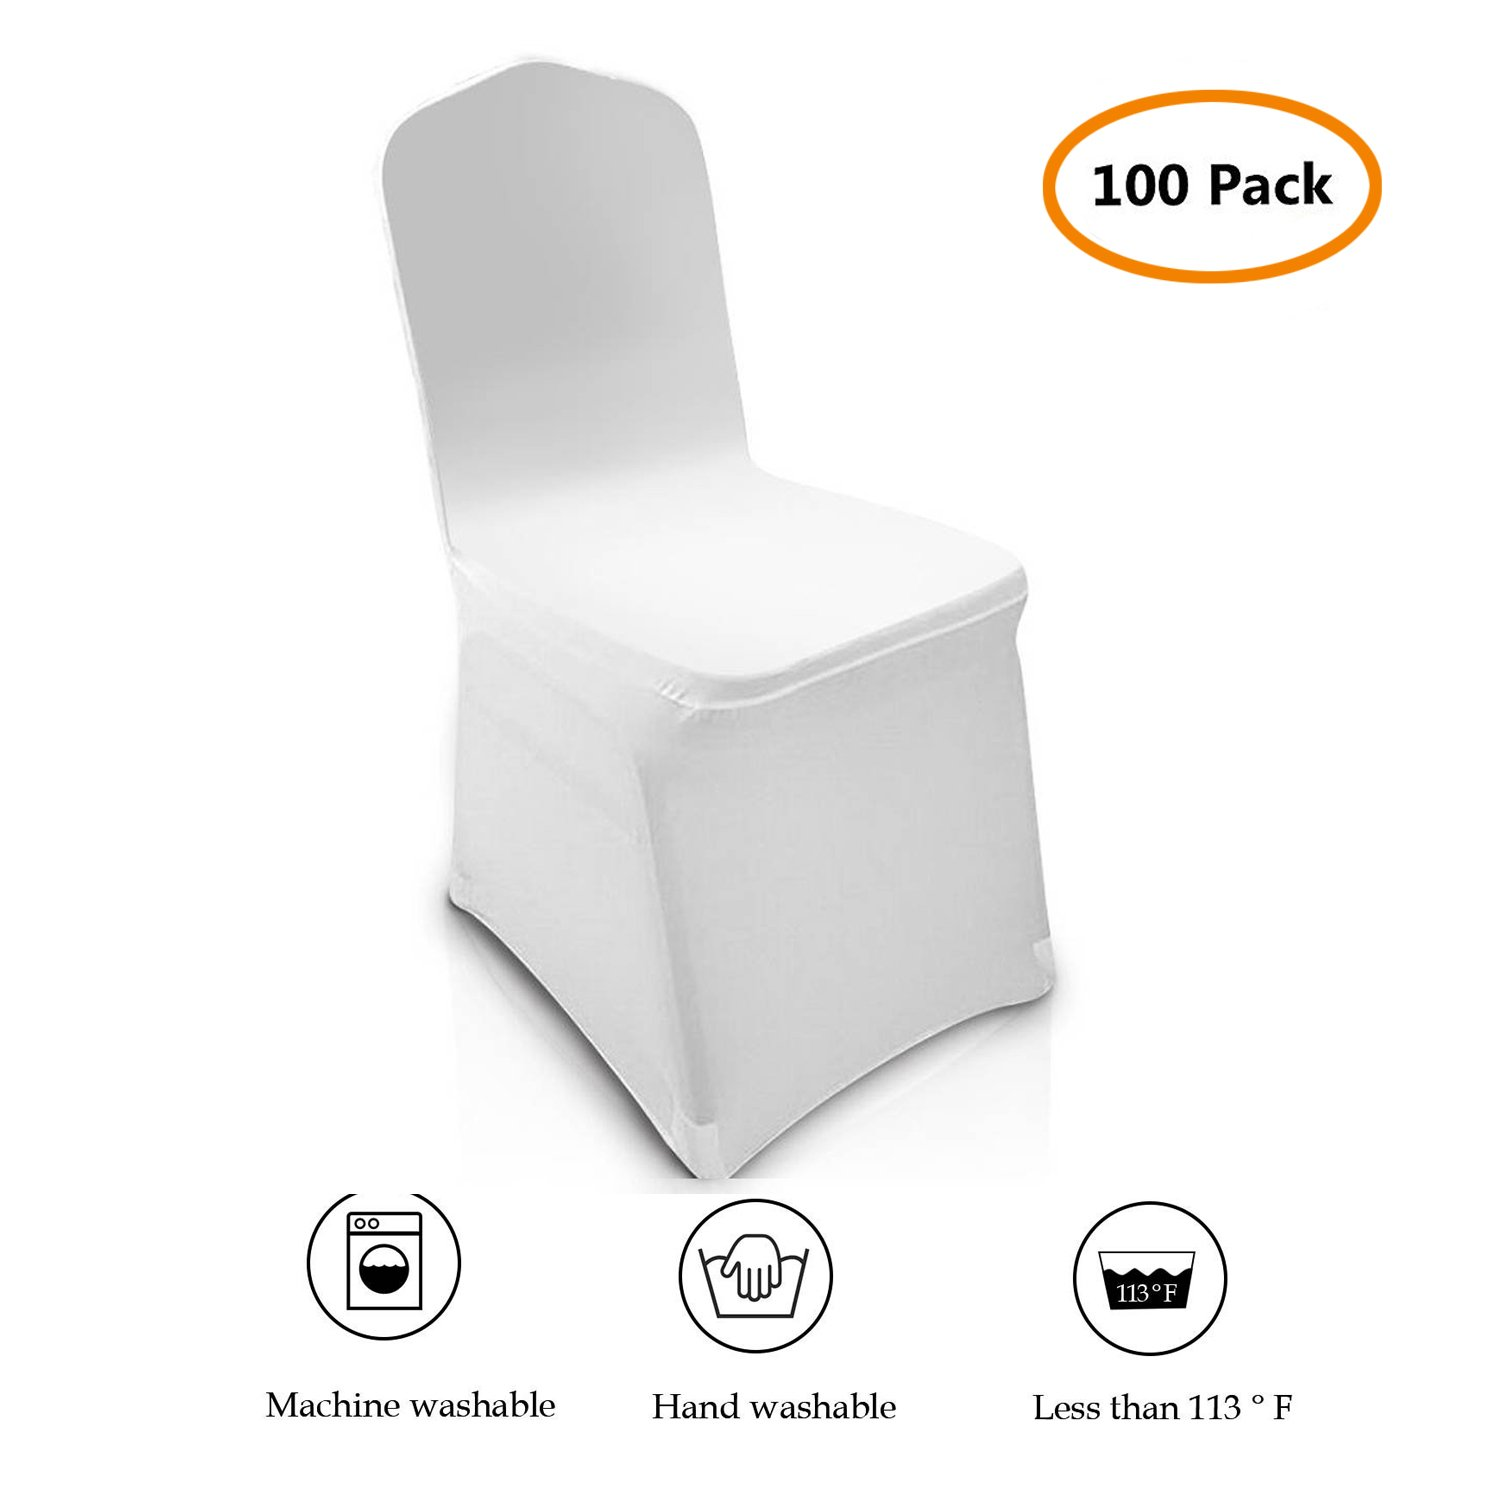 100 pcs Universal Chair Covers Spandex White for Wedding Party Banquet Folding Chairs Decoration [US Stock] (White 2)